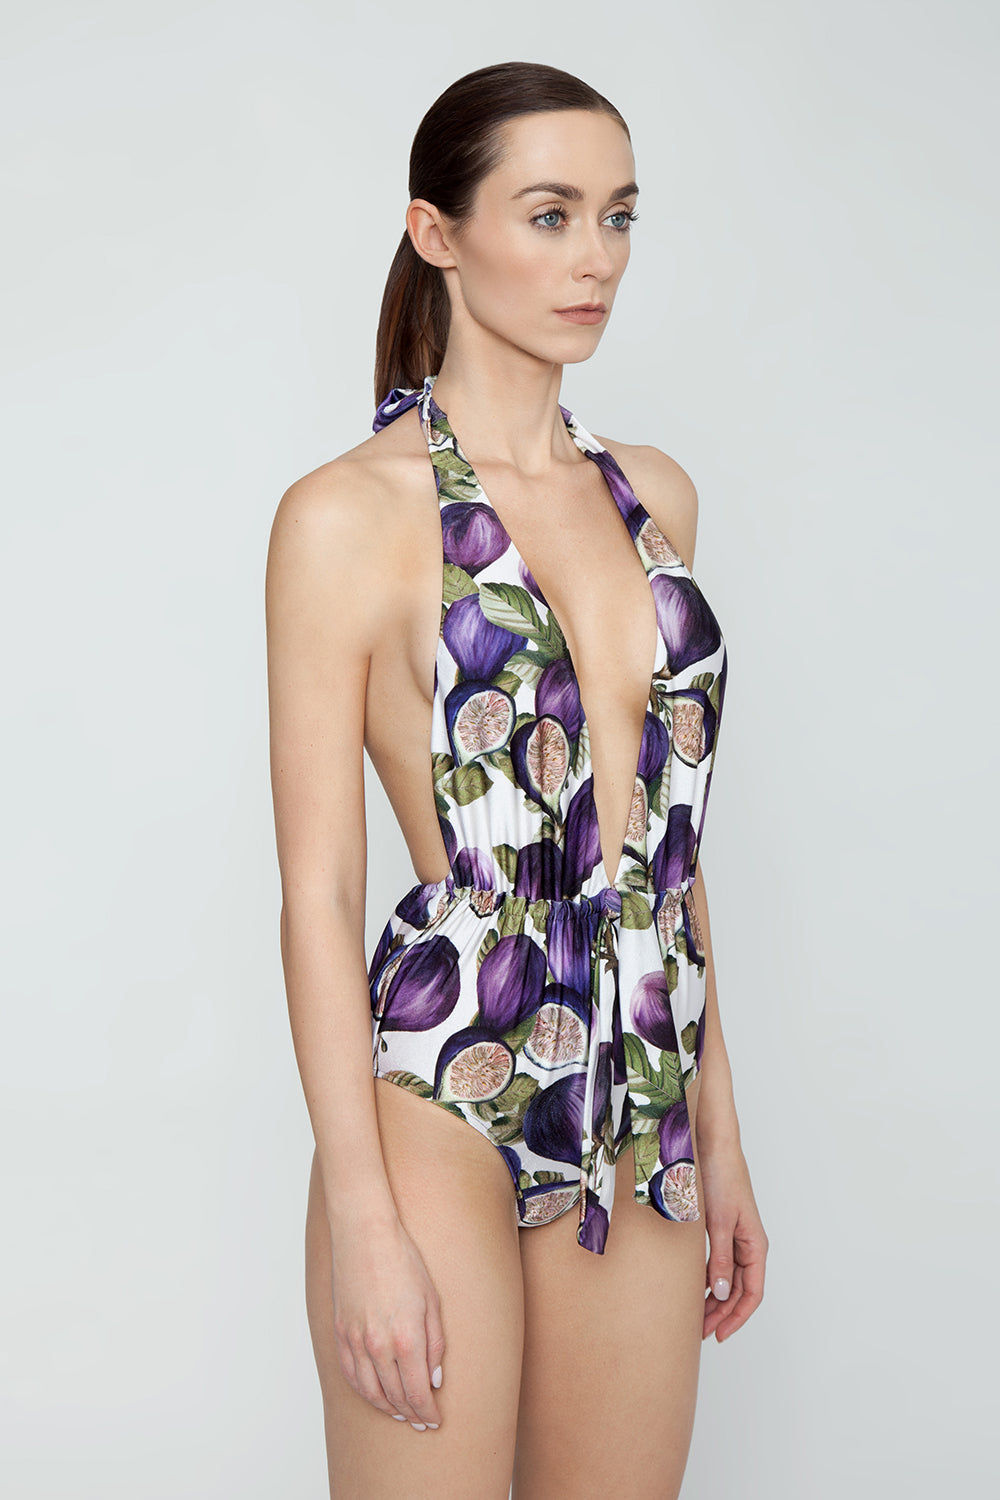 ADRIANA DEGREAS Plunging Halter Neck One Piece Swimsuit - Fig Purple Print One Piece   Fig Purple Print  Adriana Degreas Knotted Halter Neck One Piece Swimsuit - Fig Purple Print. Features:  Plunging neckline Adjustable halter neck ties Pin-up styles from 1950s Cut from soft stretch fabric Medium coverage   Side view